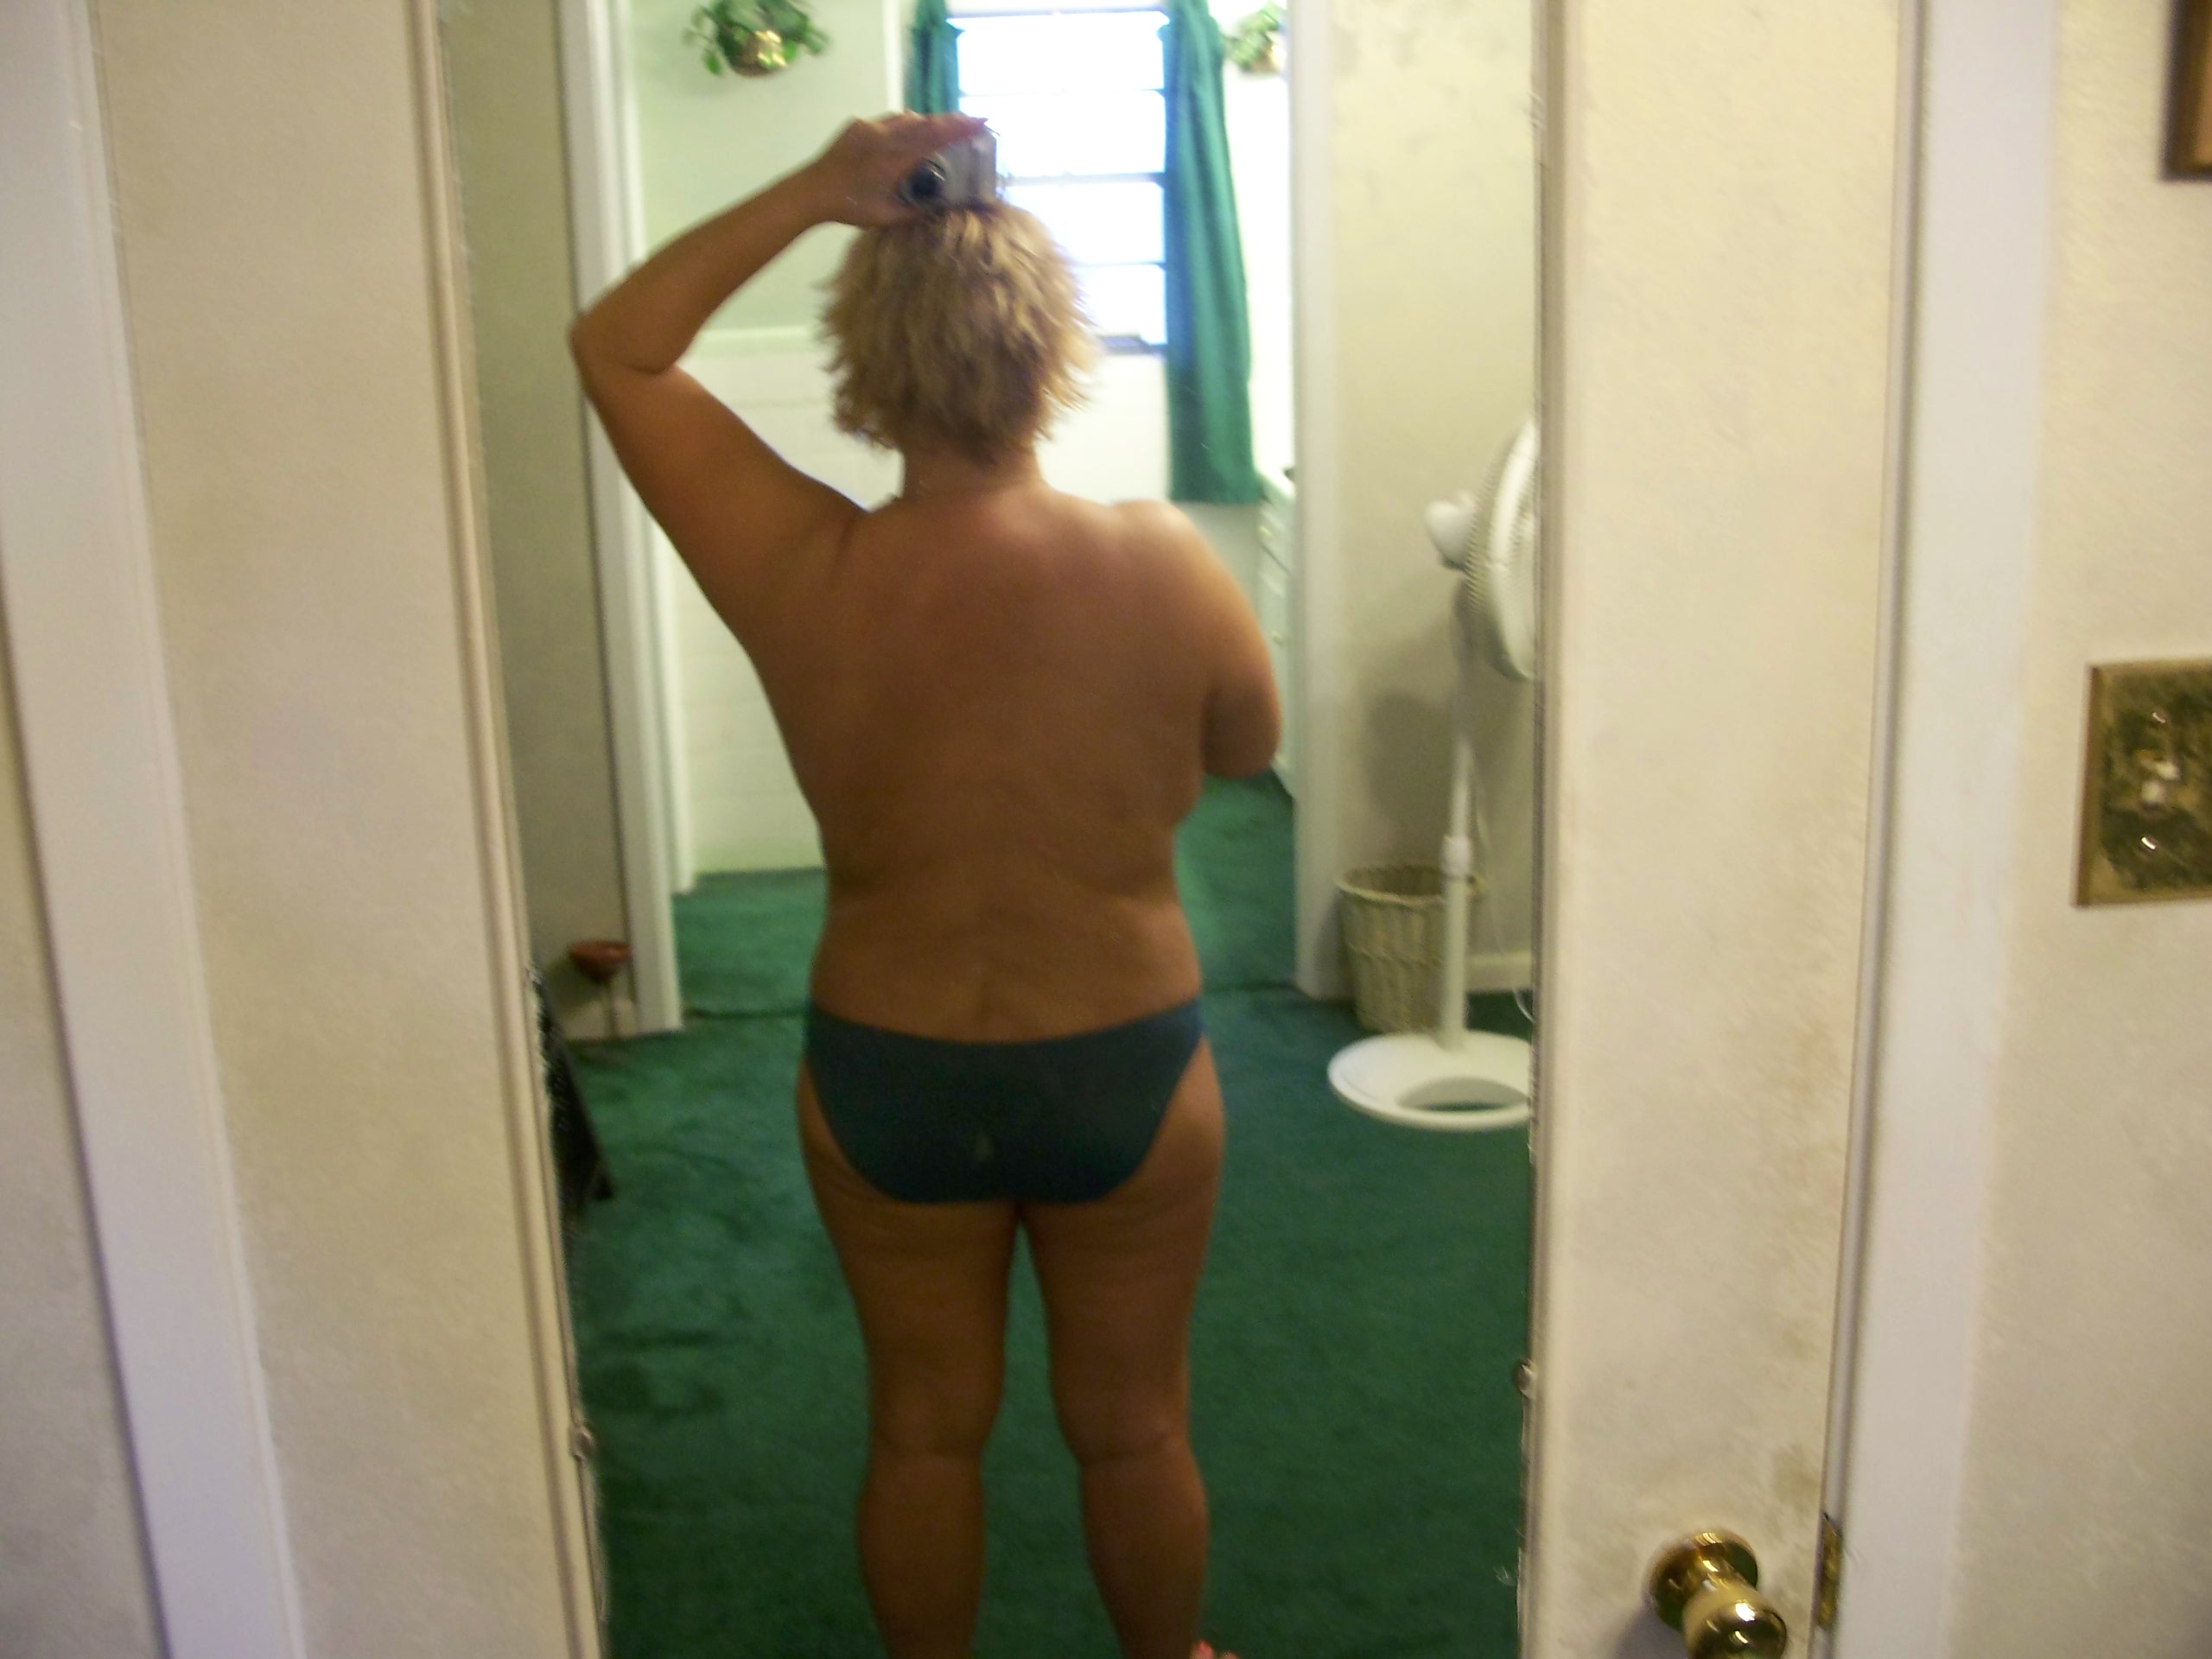 1 mth 2nd TT, backside view this is awesome compared to the before with the hog fat